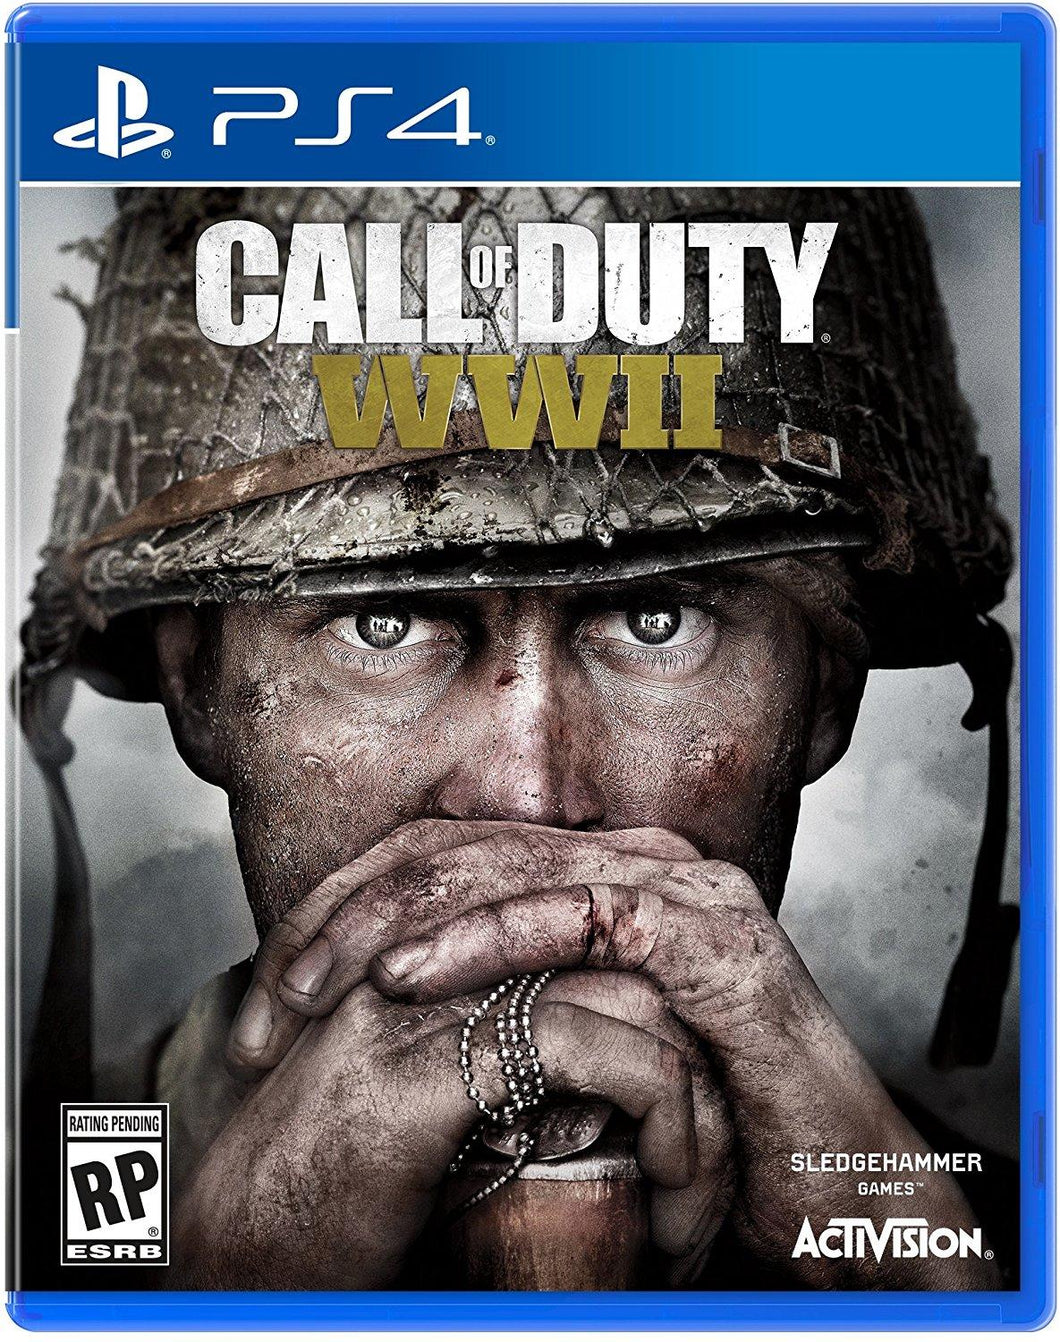 Jogo PS4 - Call of Duty: WWII